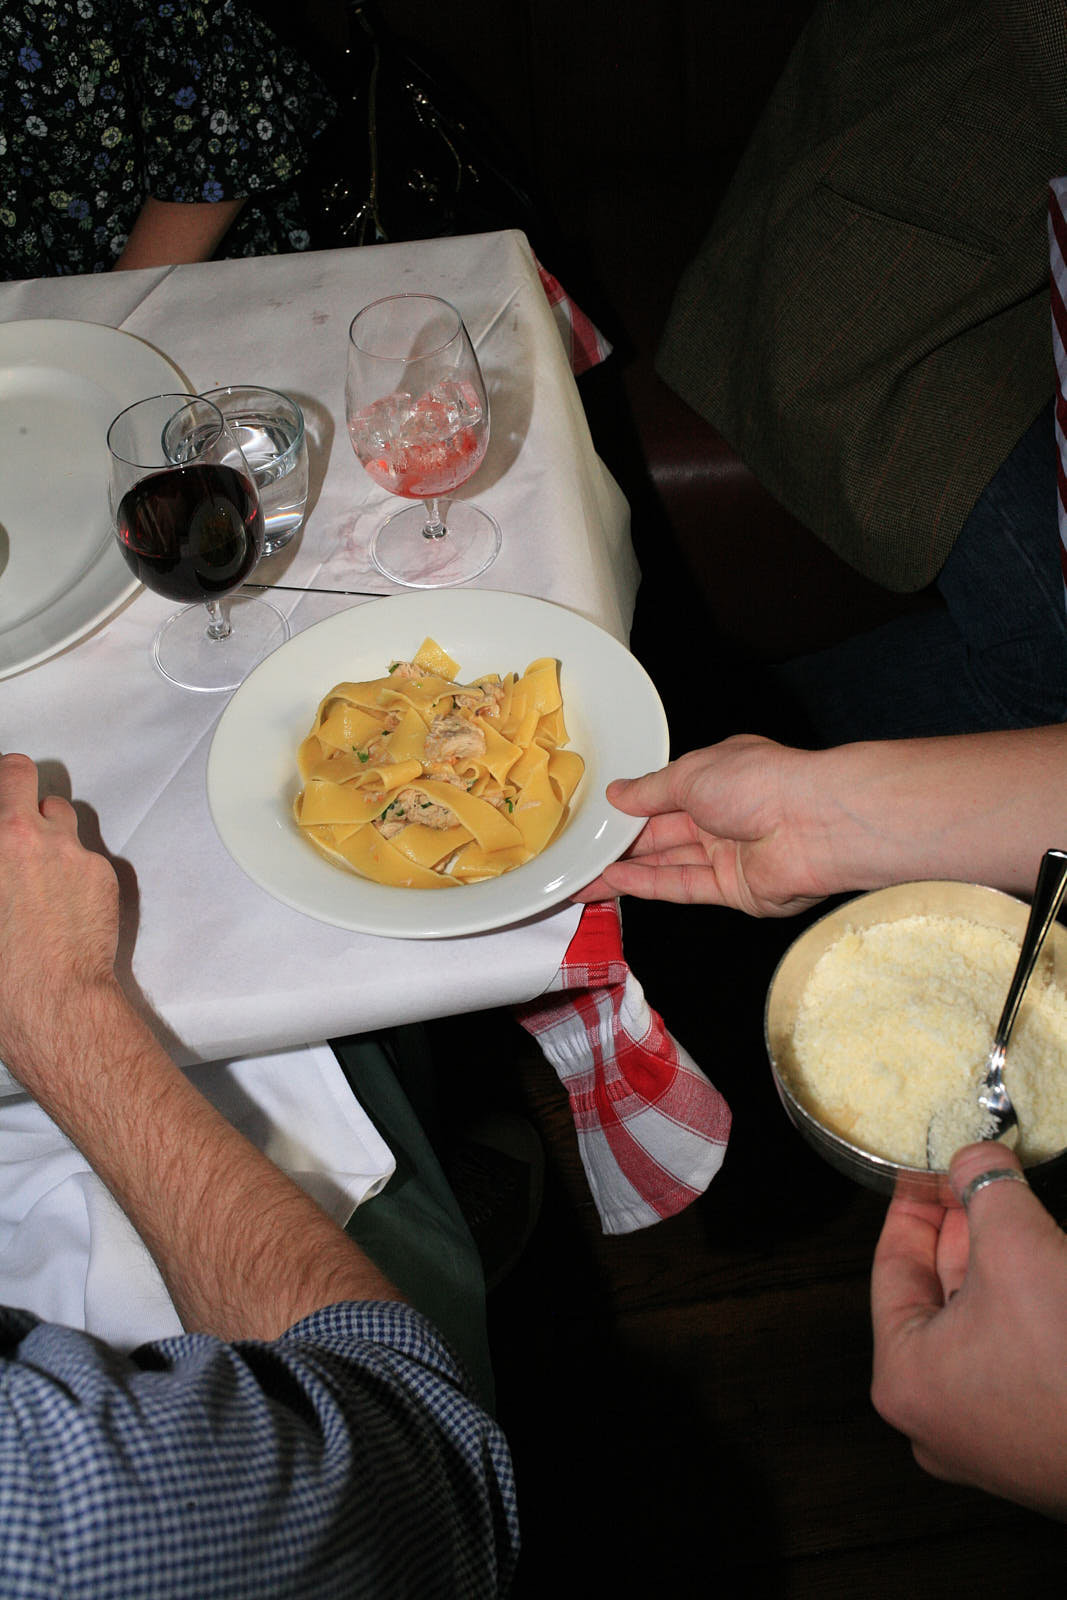 Serving up pasta with Parmesan ready to spoon at Brutto, in Farringdon.